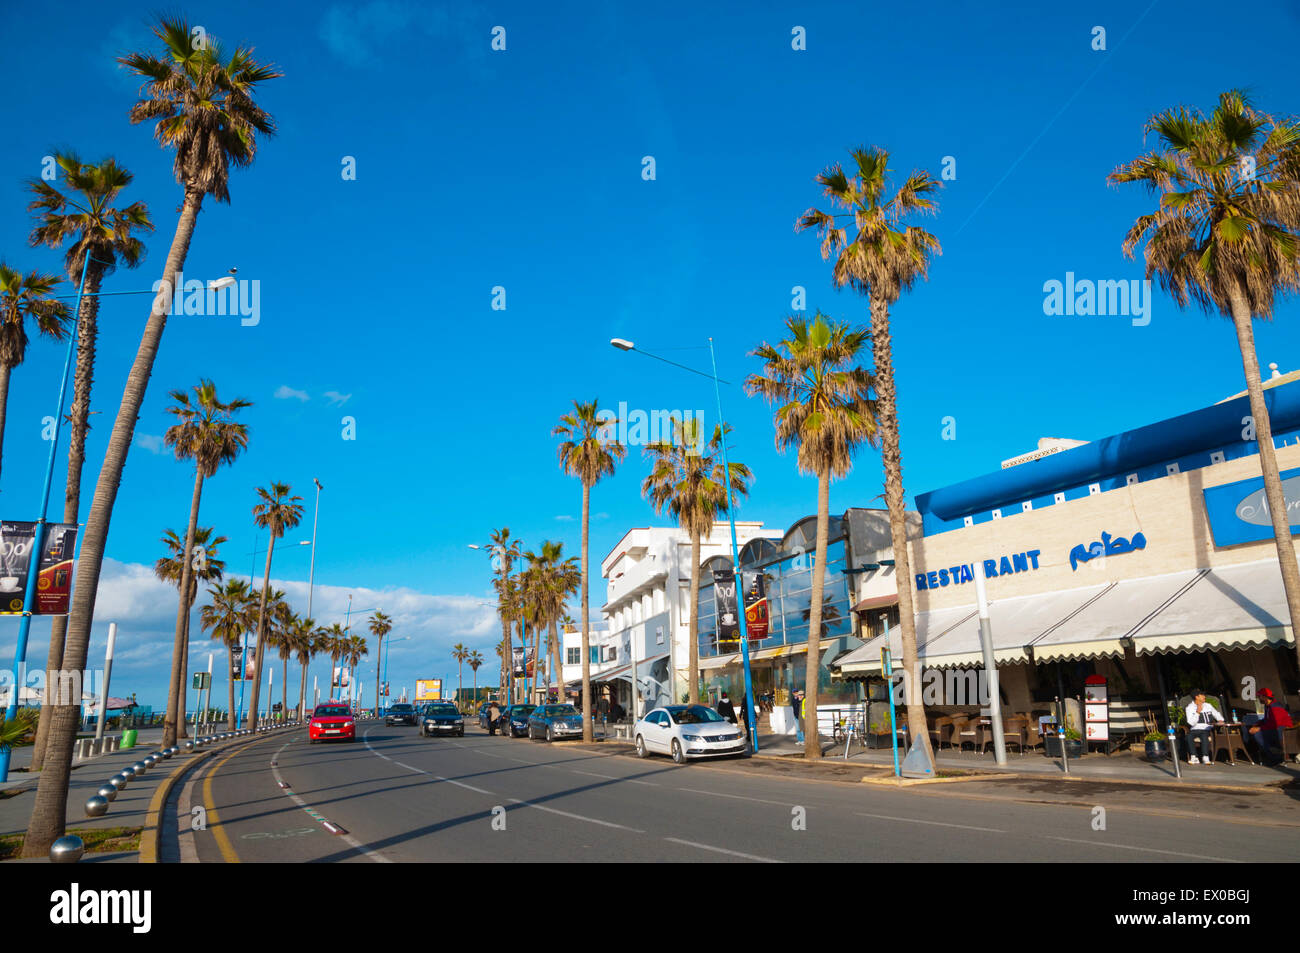 Boulevard de la Corniche, Ain Diab, resort, district à l'extérieur du centre, Casablanca, Maroc, Afrique Photo Stock